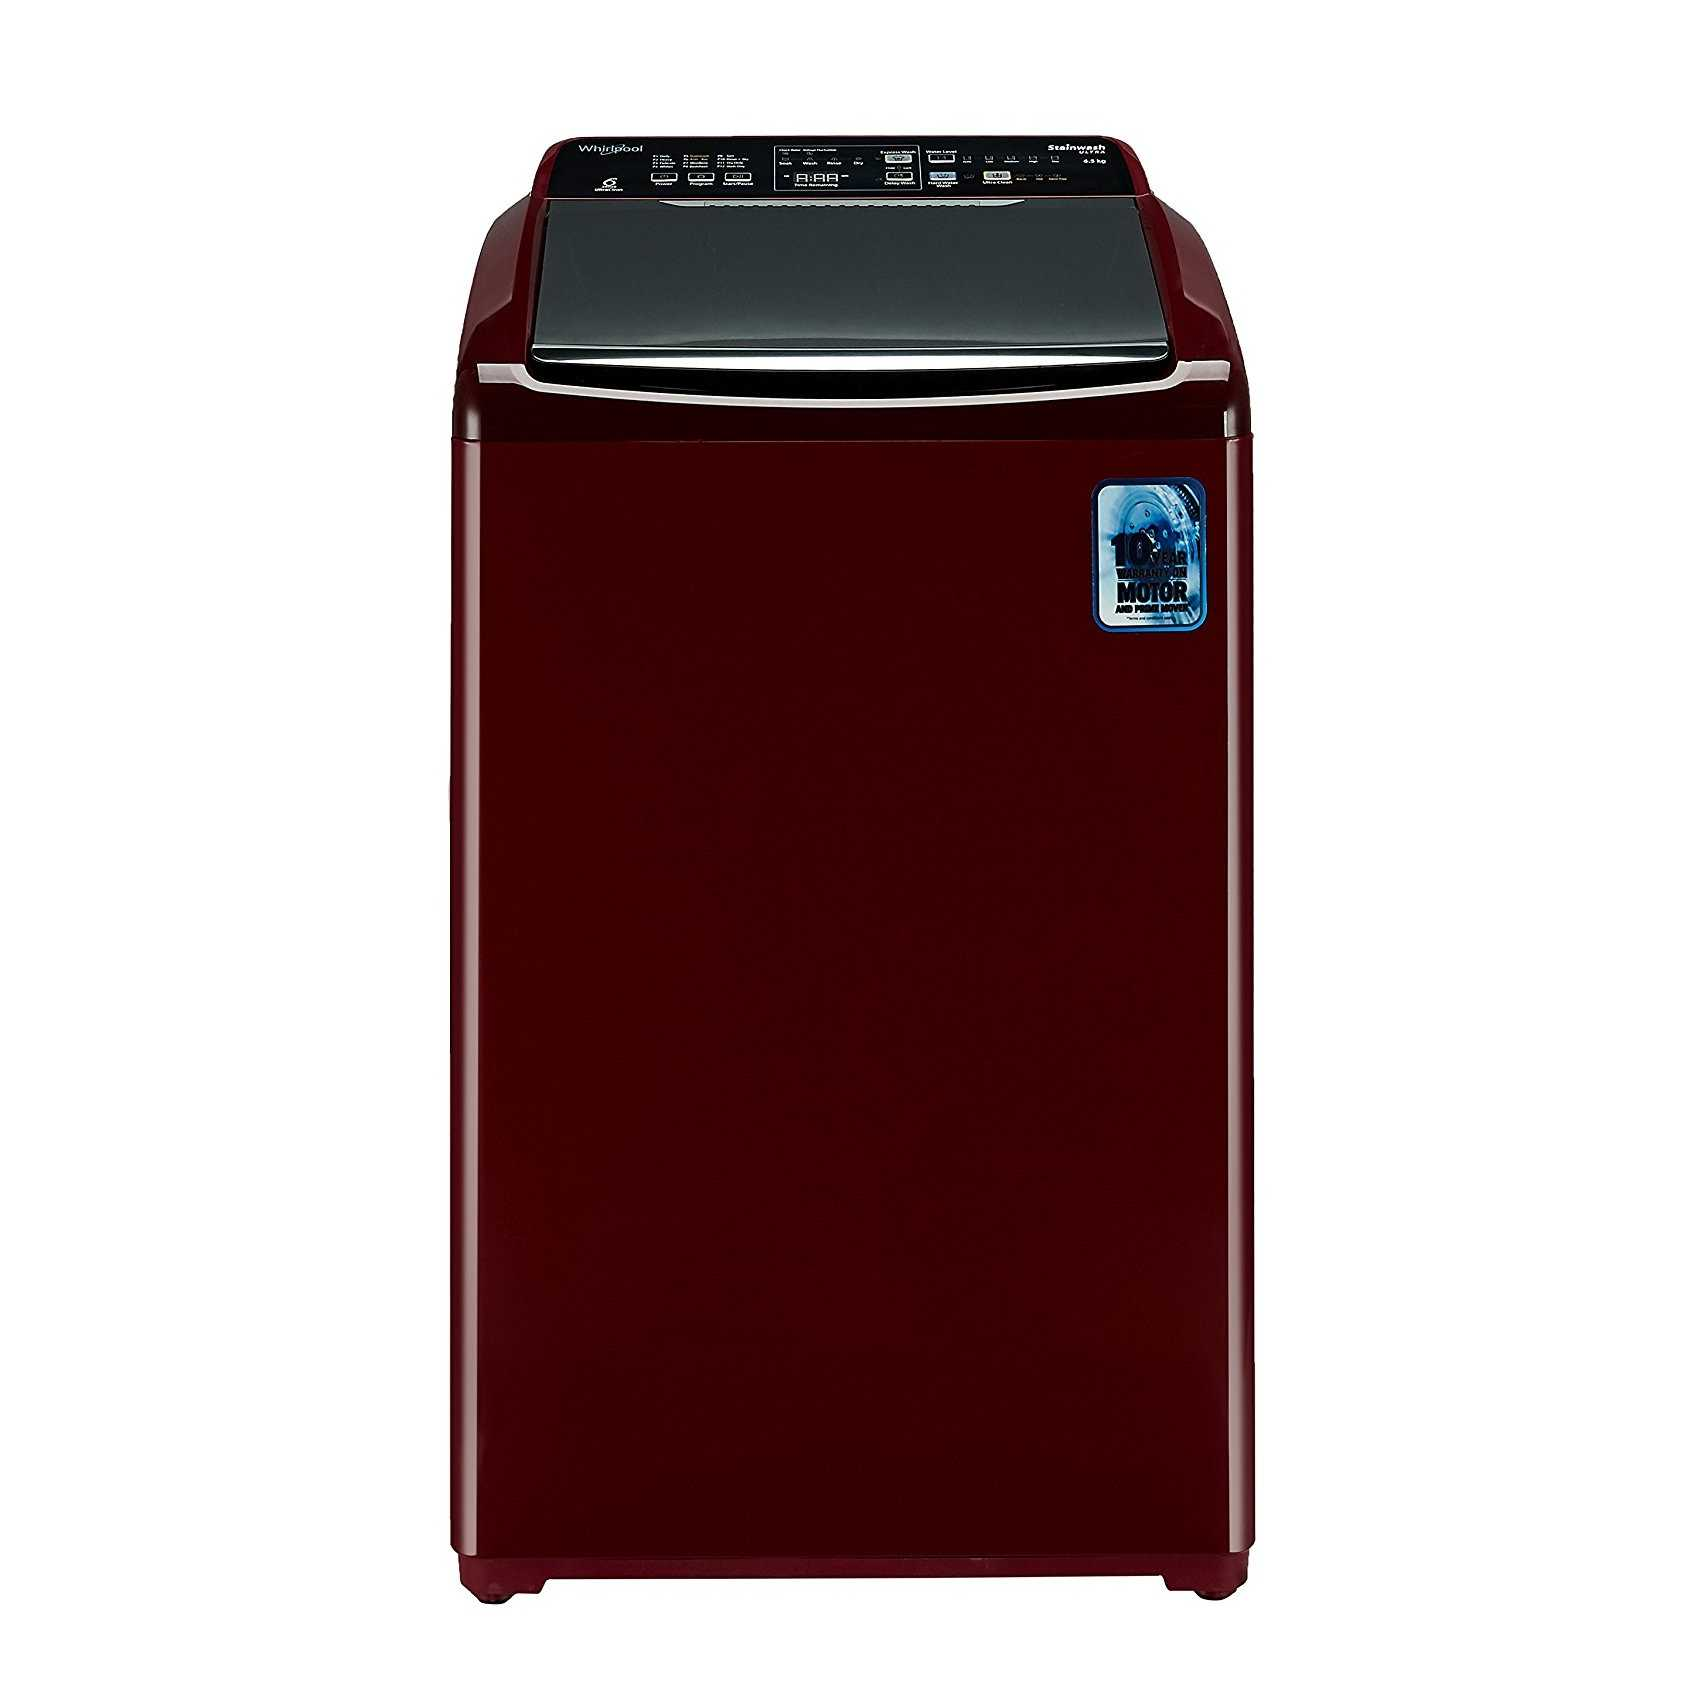 Whirlpool Stainwash Ultra 6.5 Kg Fully Automatic Top Loading Washing Machine